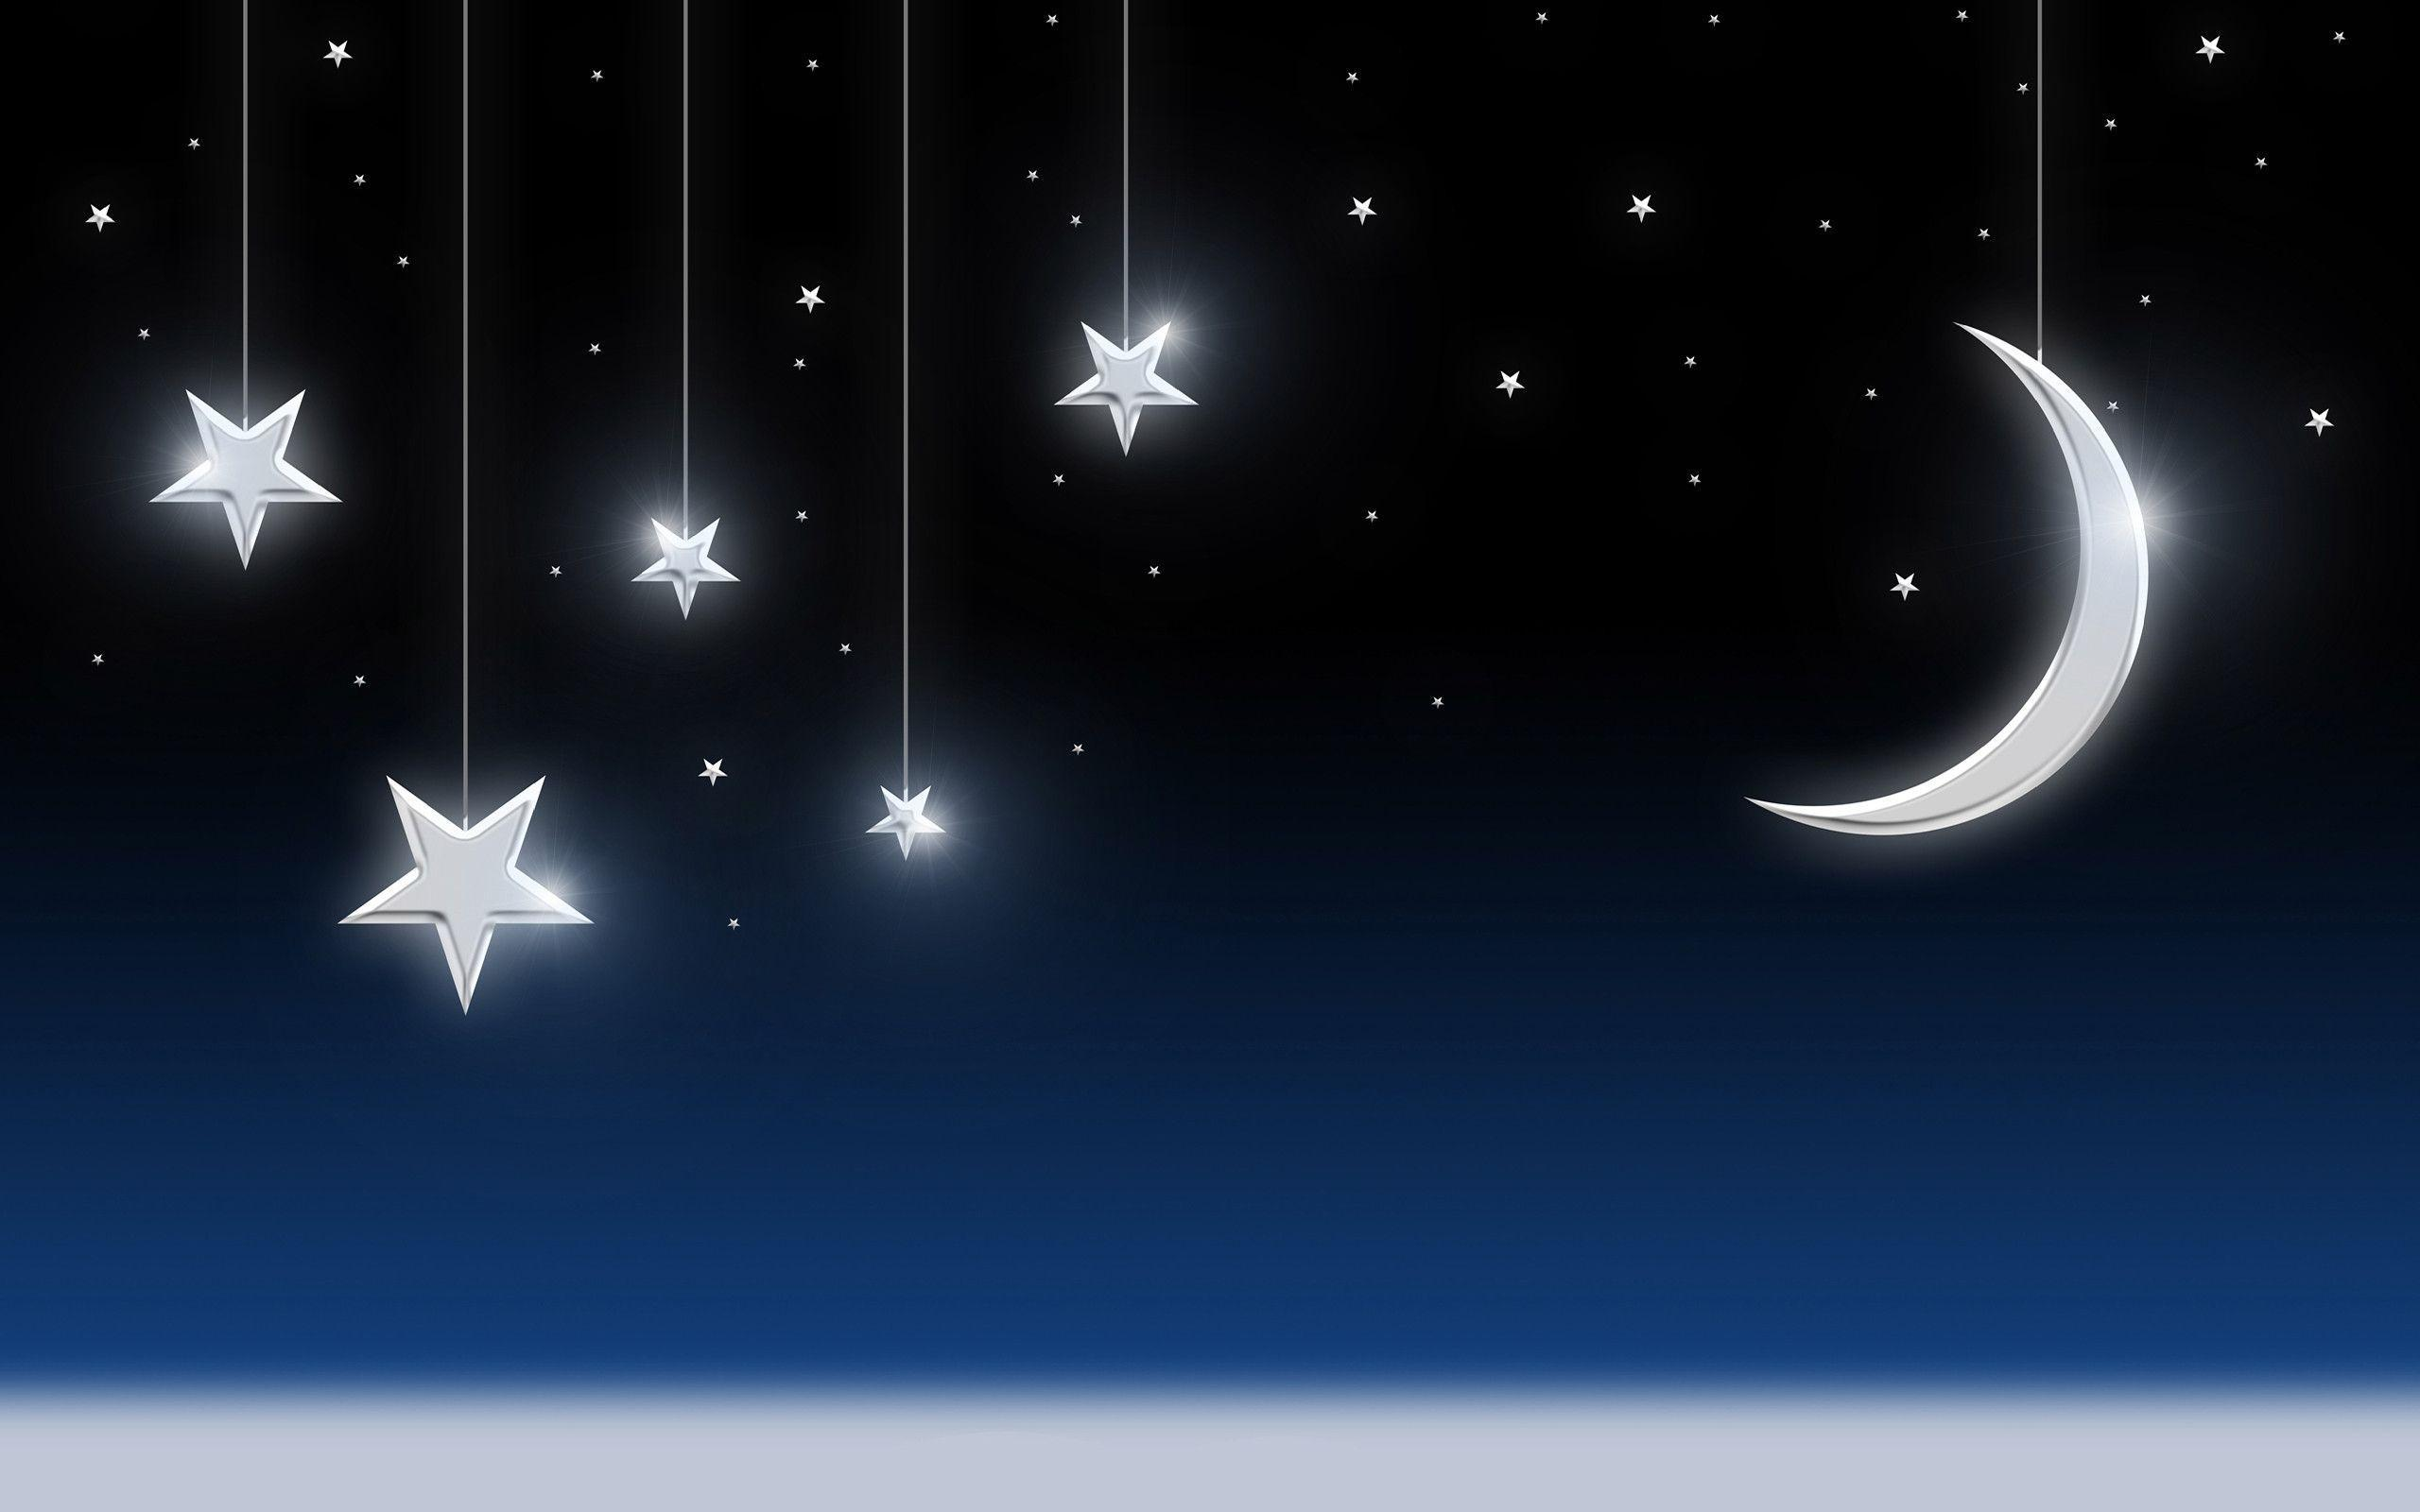 night sky desktop background